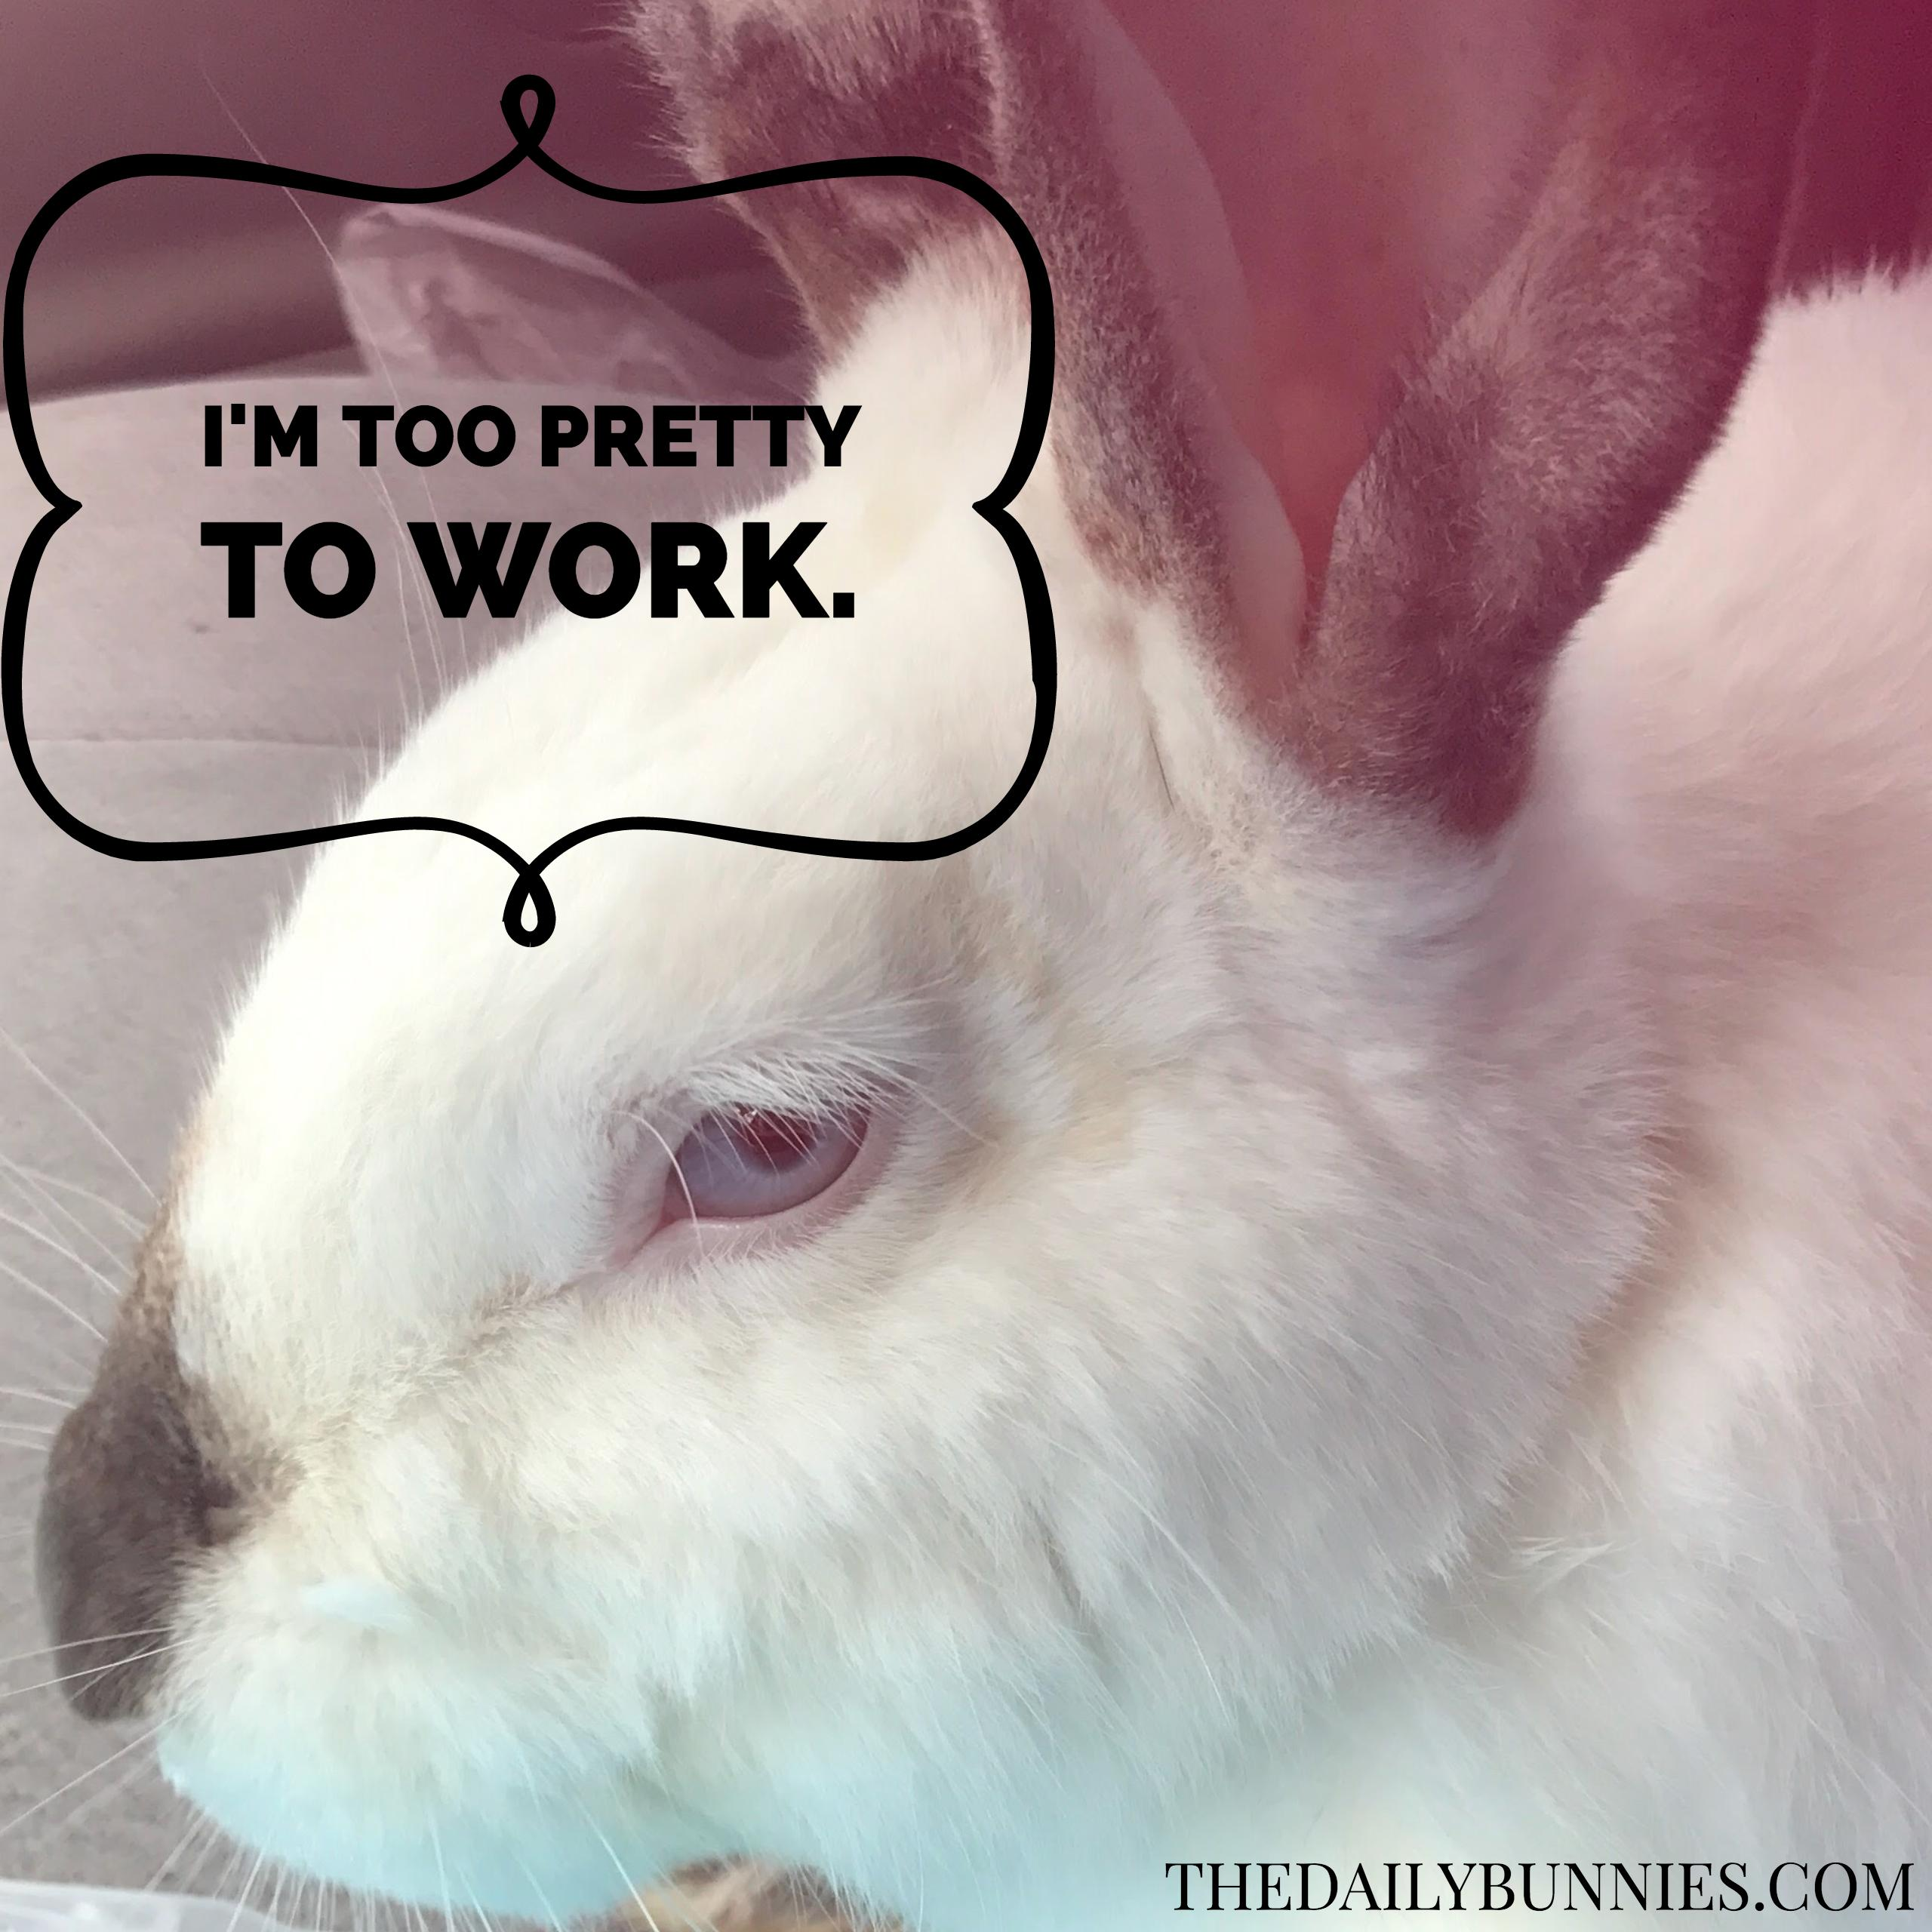 I'm too pretty to work!